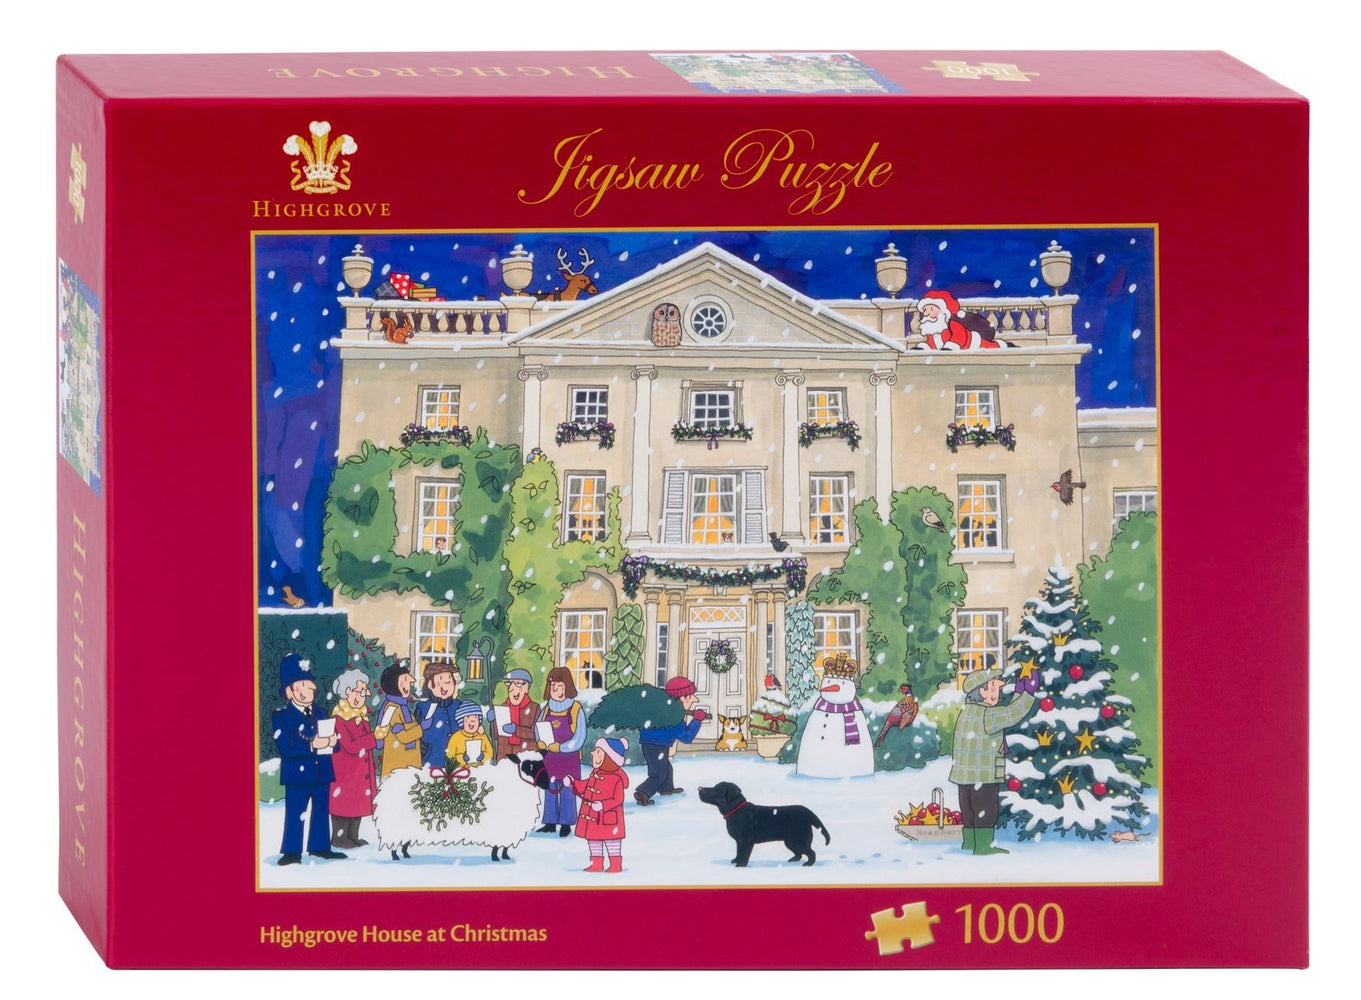 Highgrove House at Christmas 1000 Piece Jigsaw Puzzle